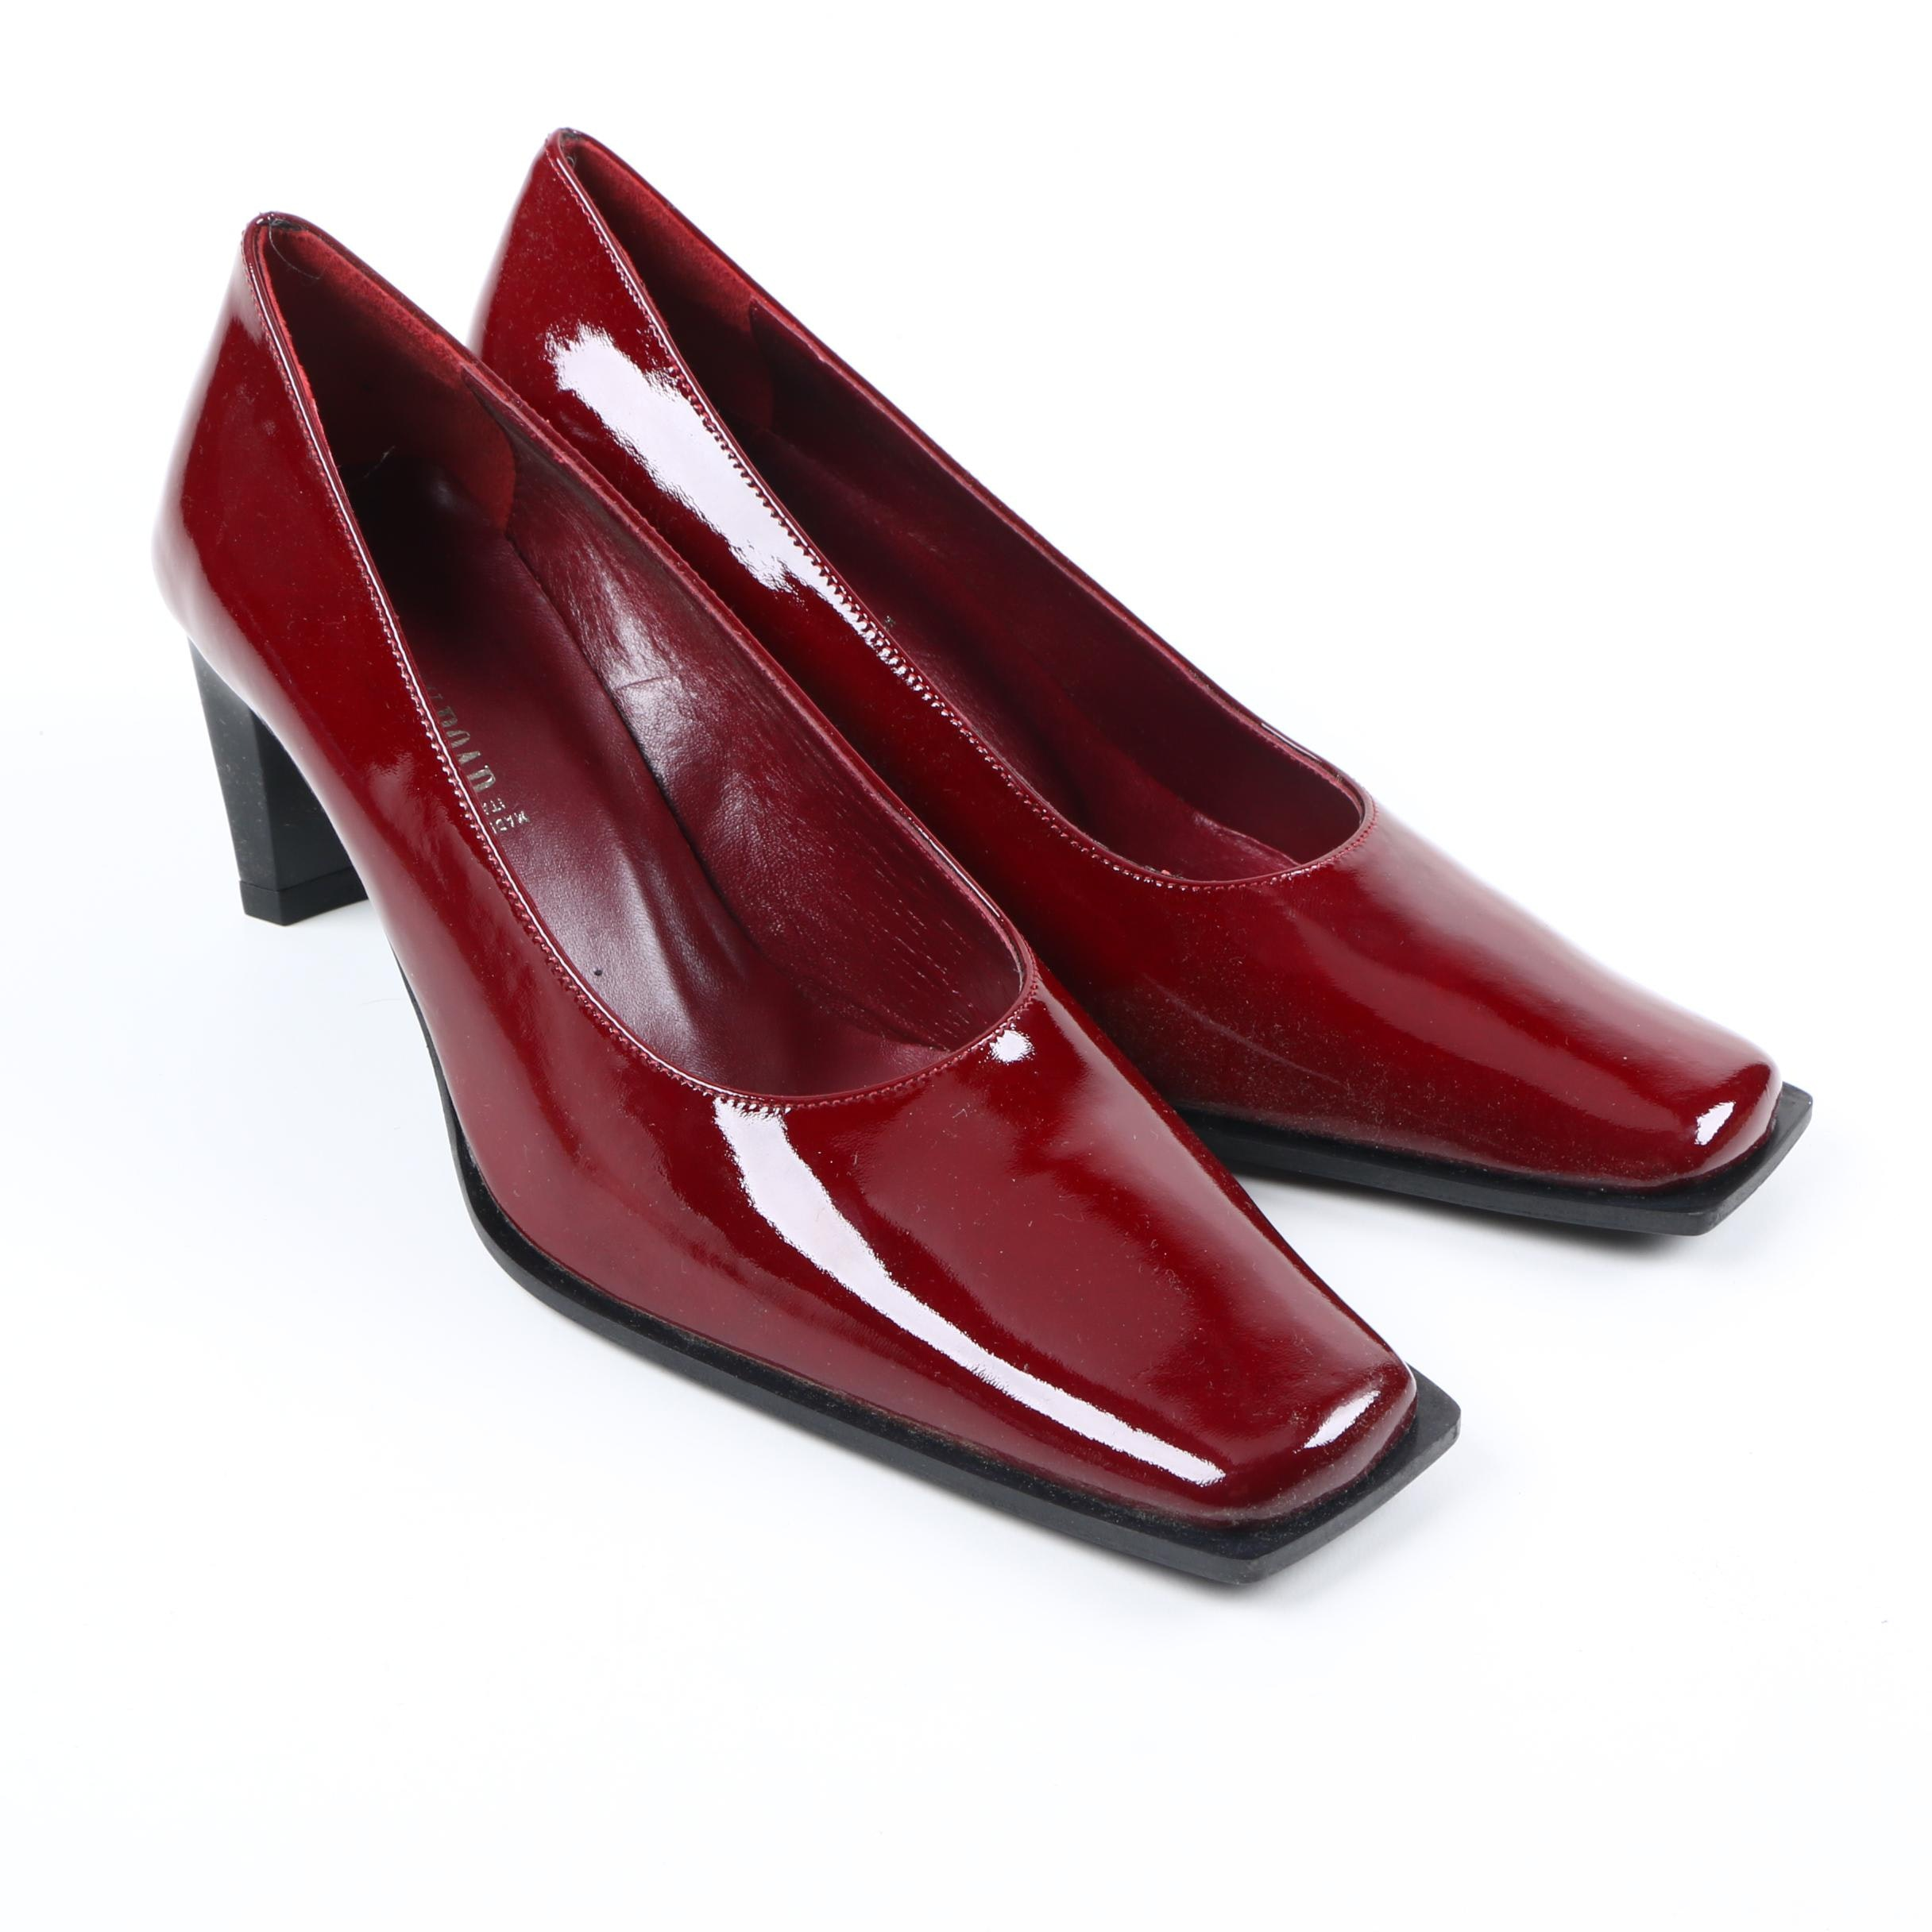 Country Road Red Patent Leather Pumps